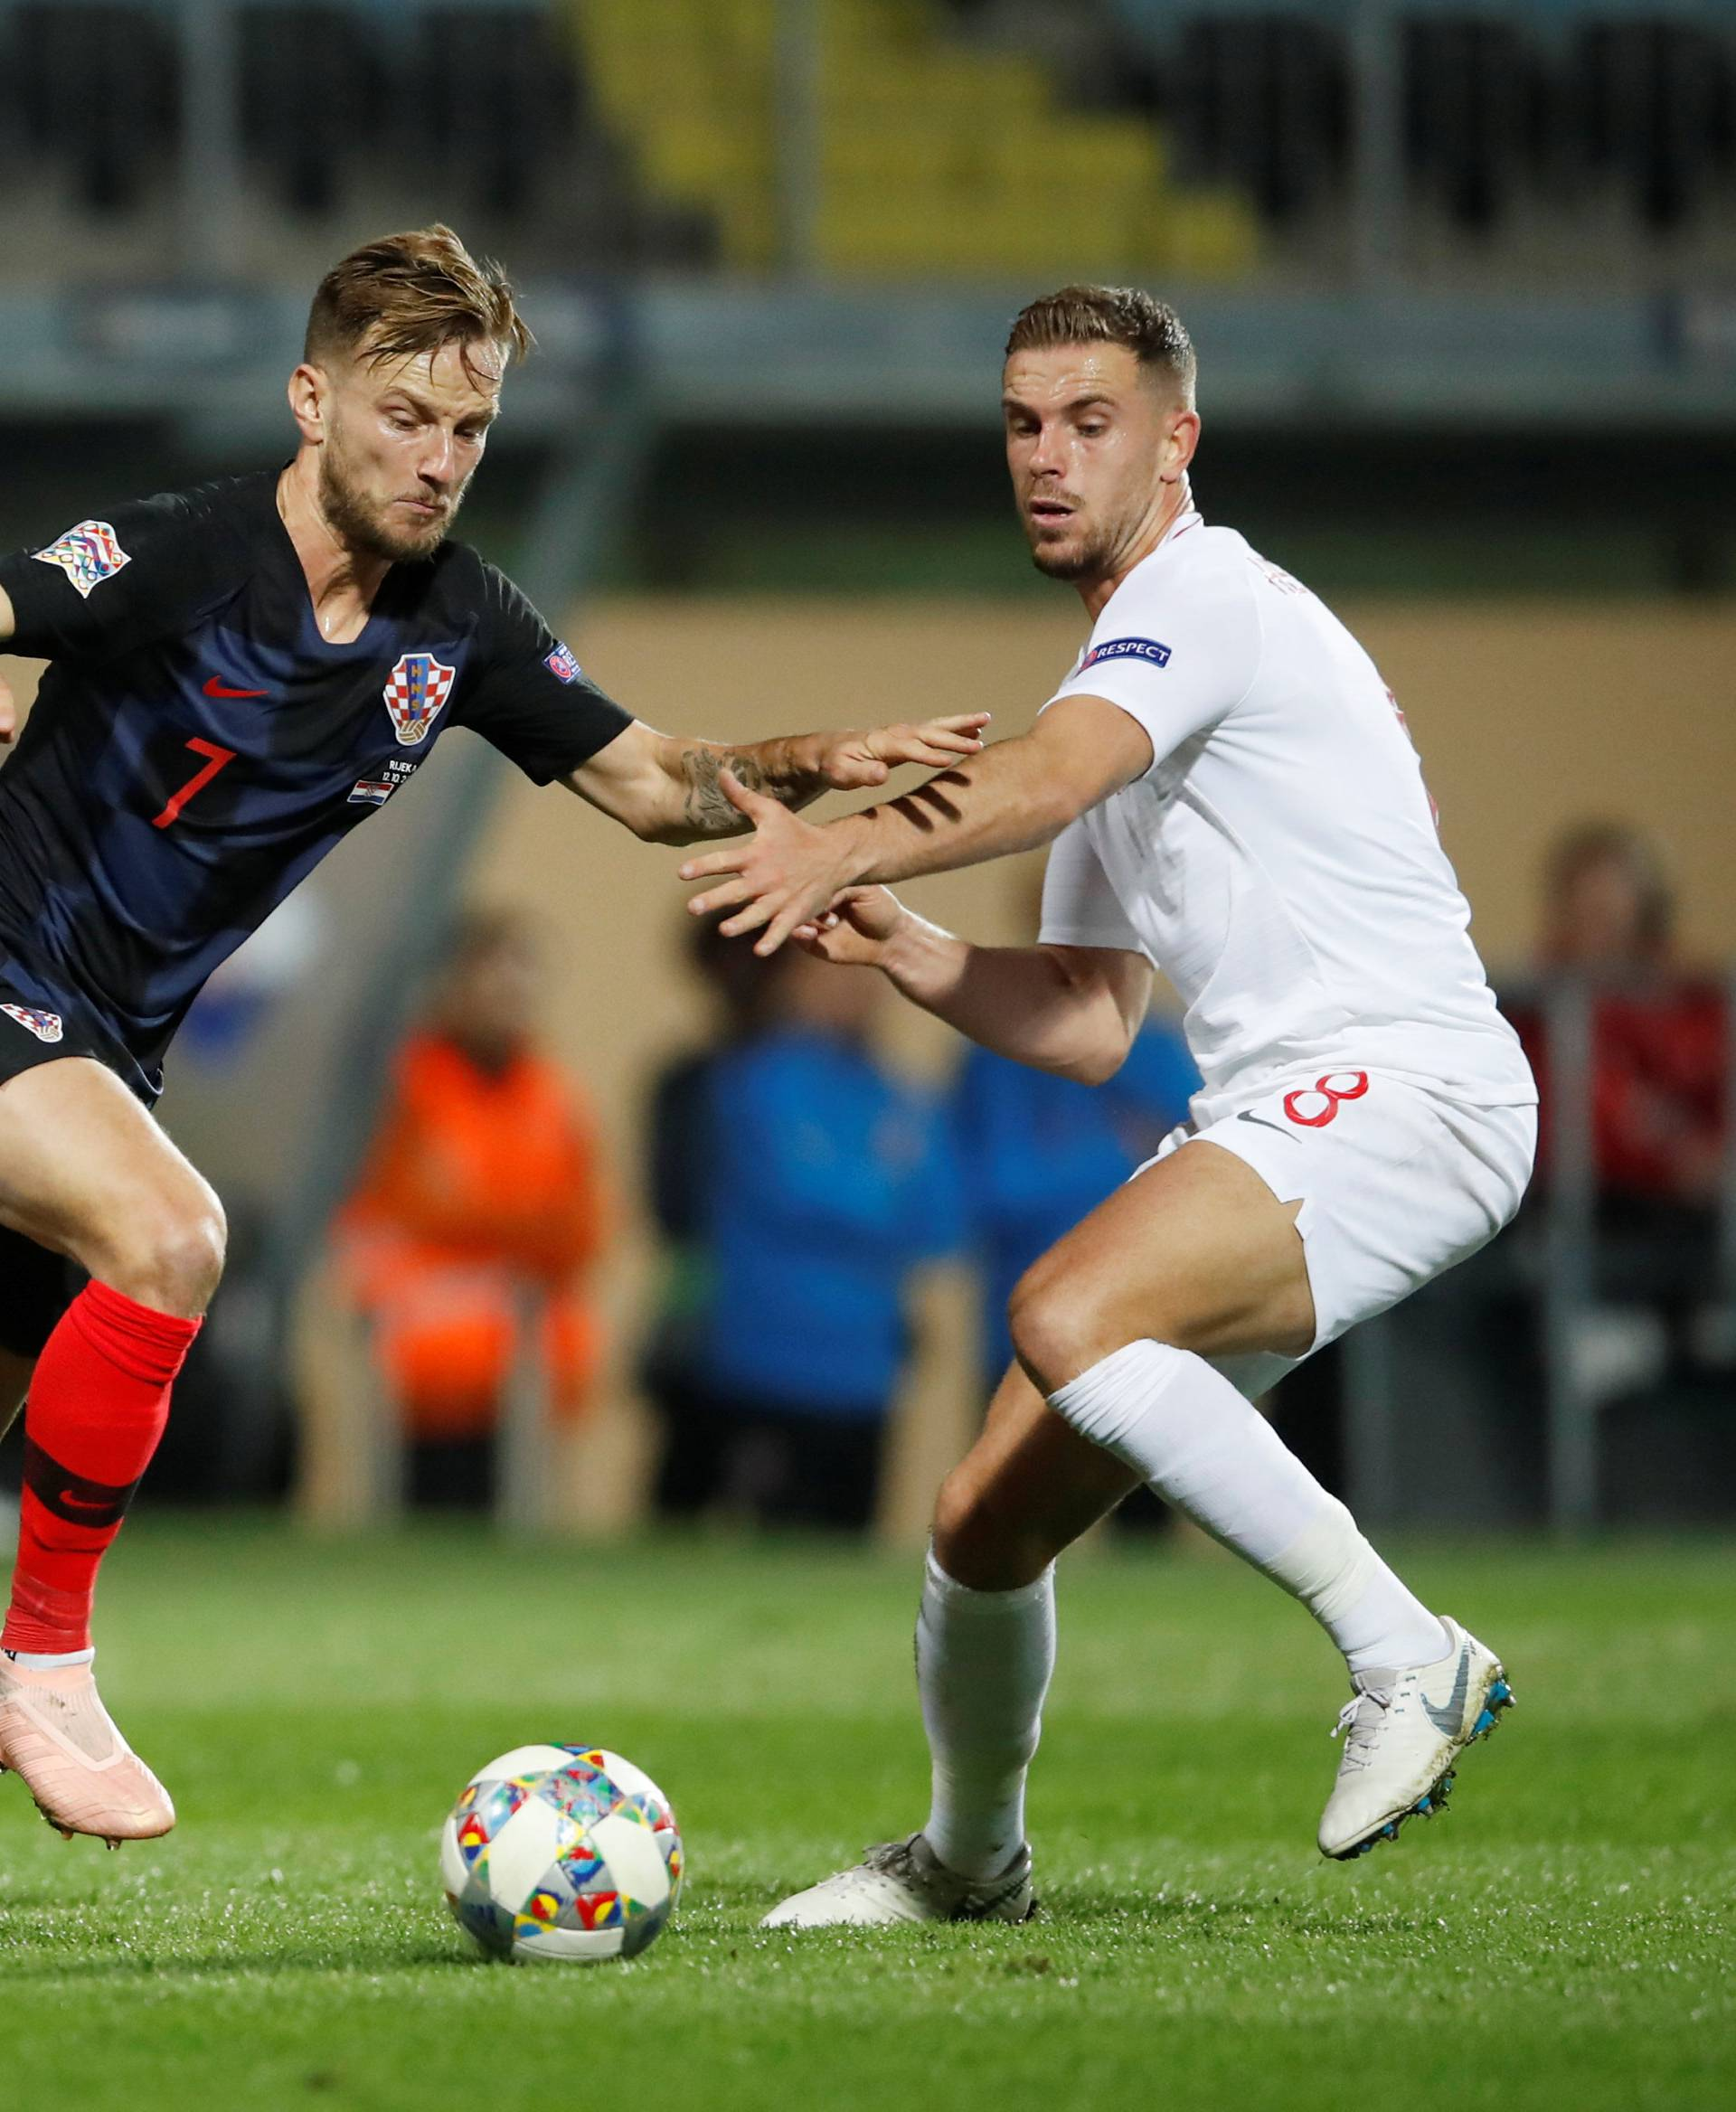 UEFA Nations League - League A - Group 4 - Croatia v England